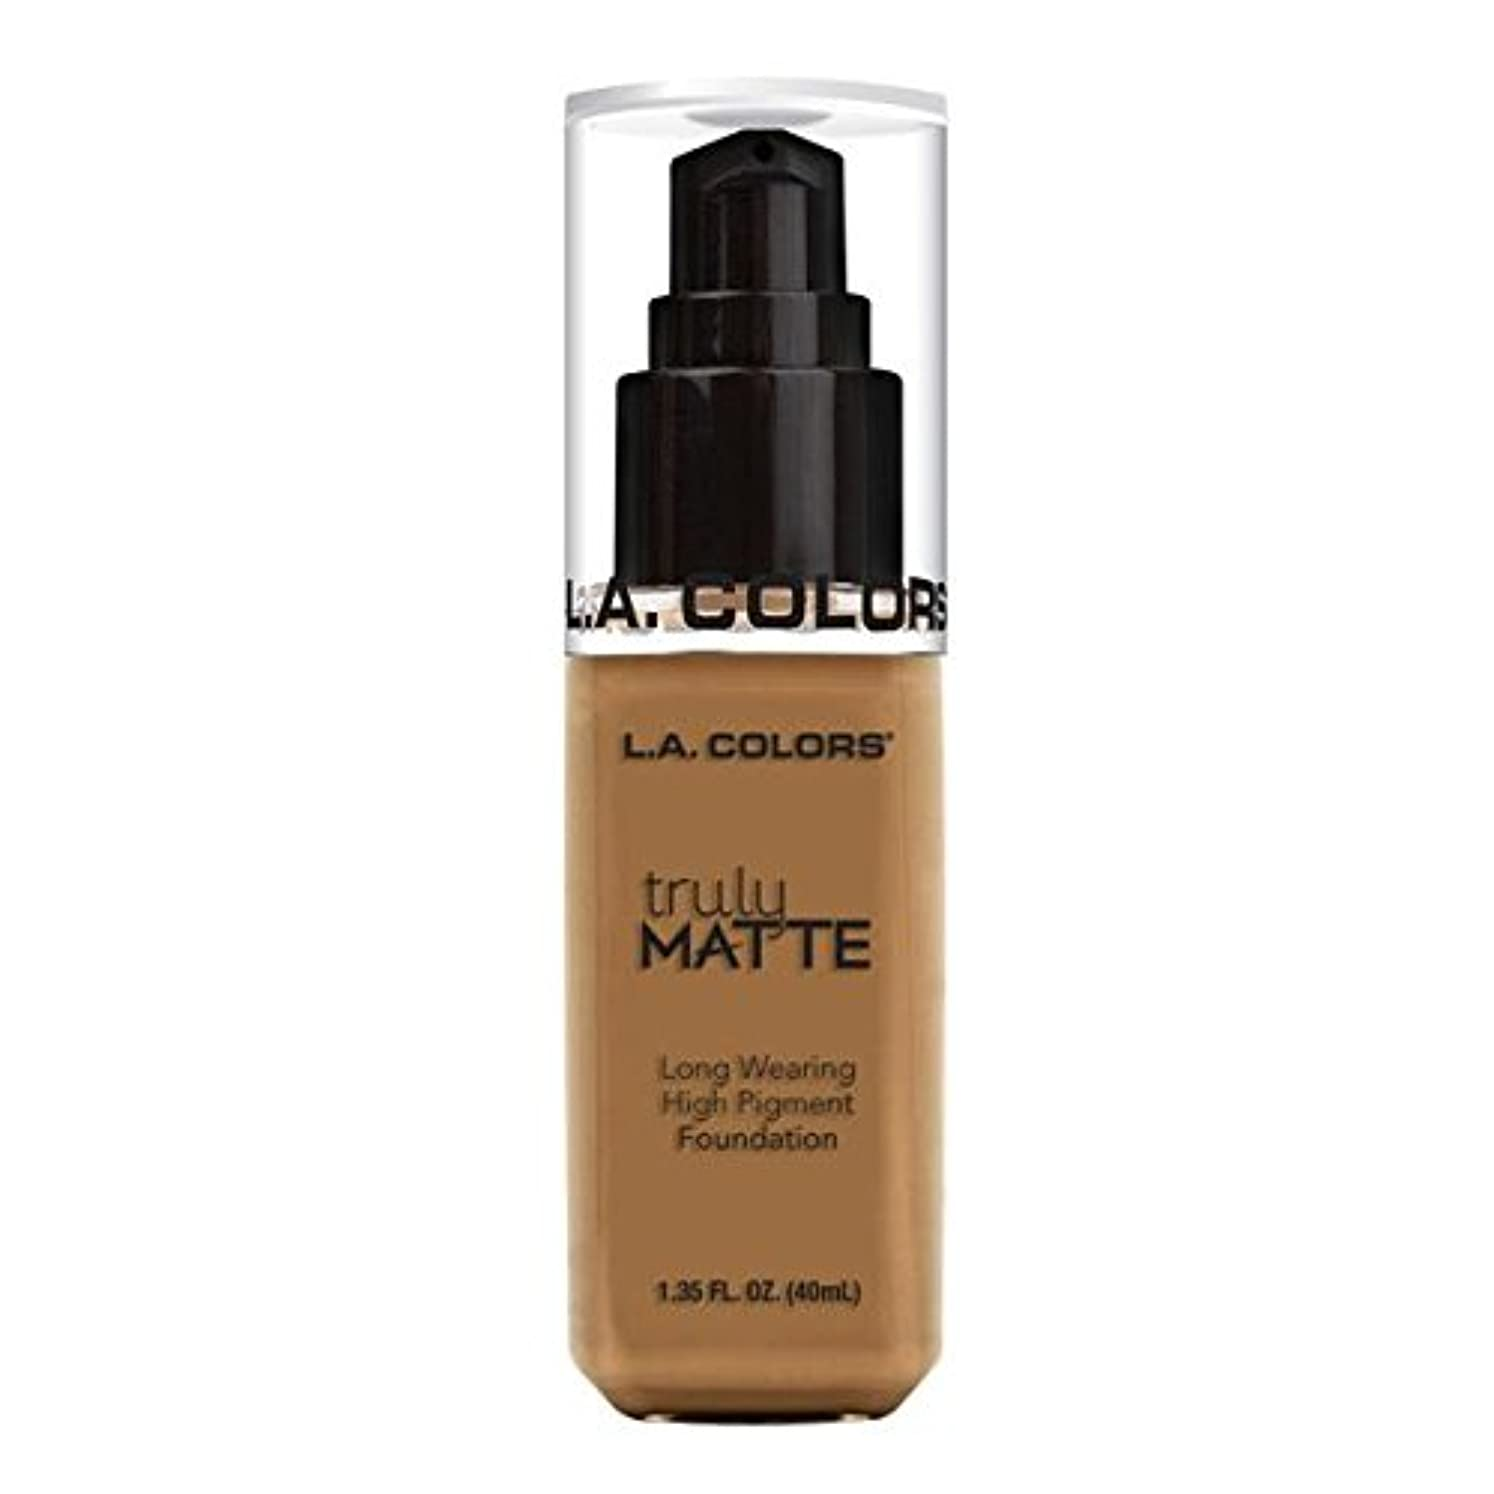 収穫類似性白雪姫(3 Pack) L.A. COLORS Truly Matte Foundation - Warm Caramel (並行輸入品)